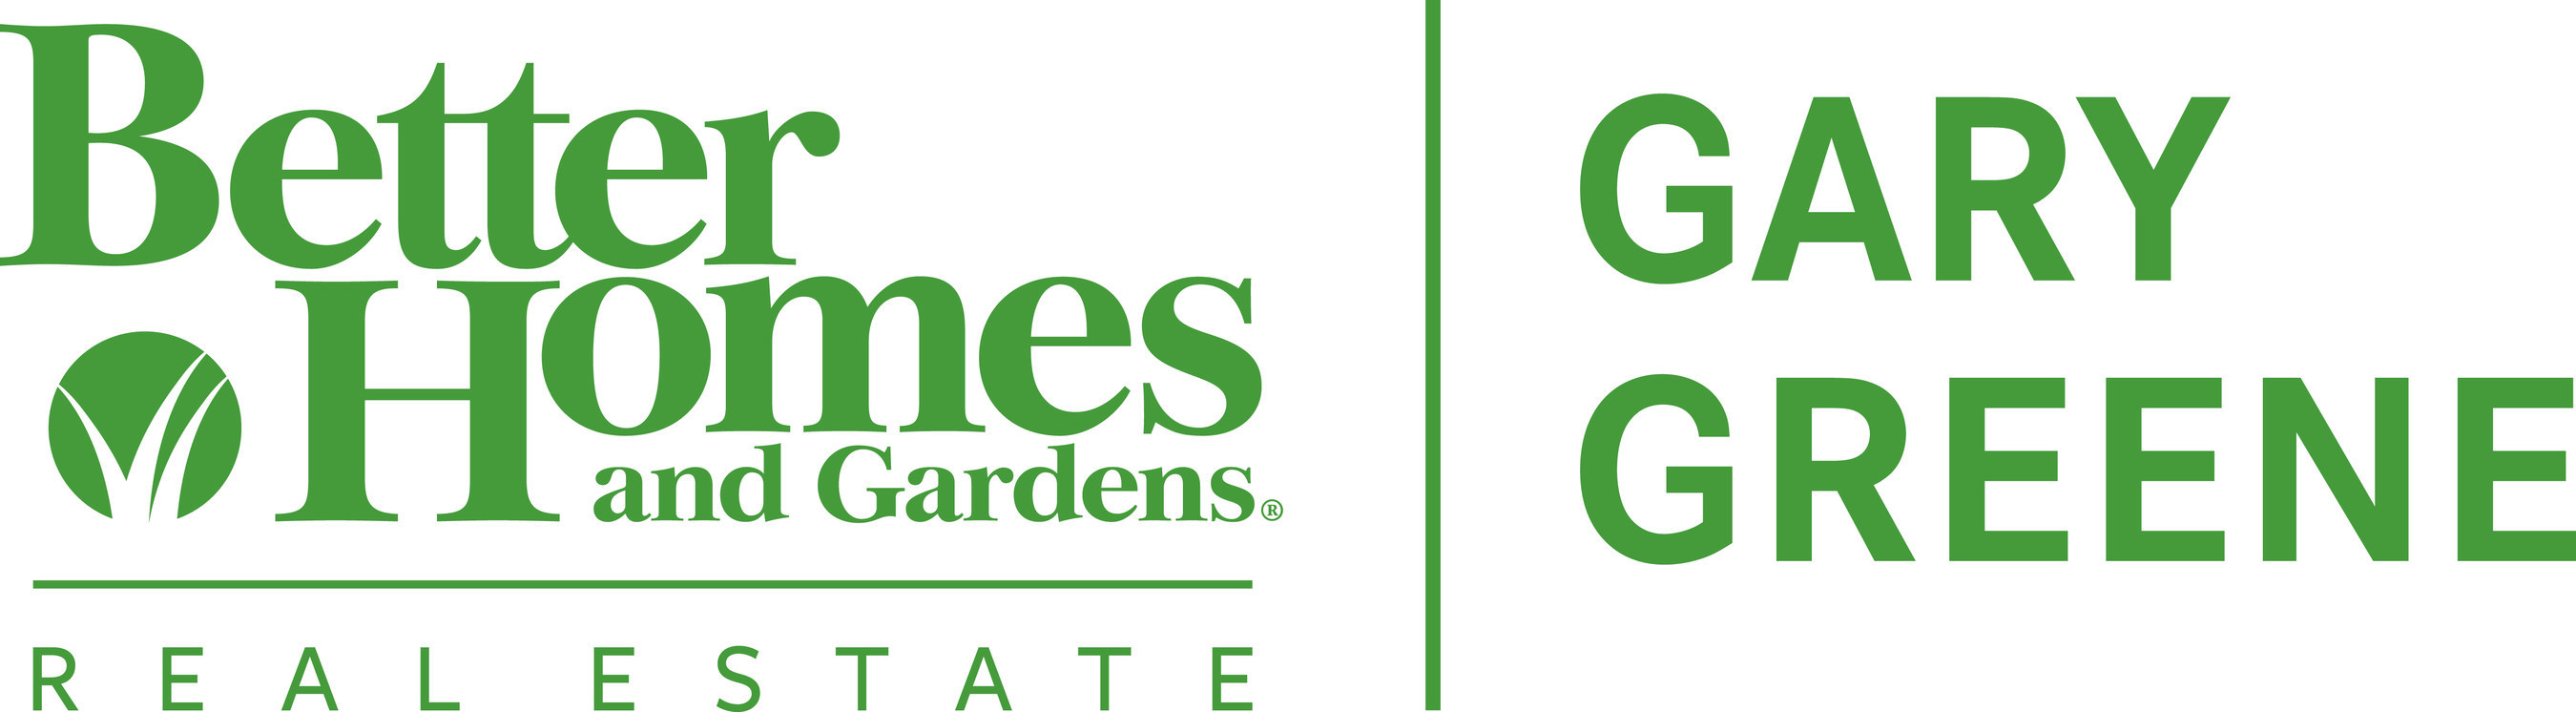 Better Homes And Gardens Real Estate Gary Greene Announces